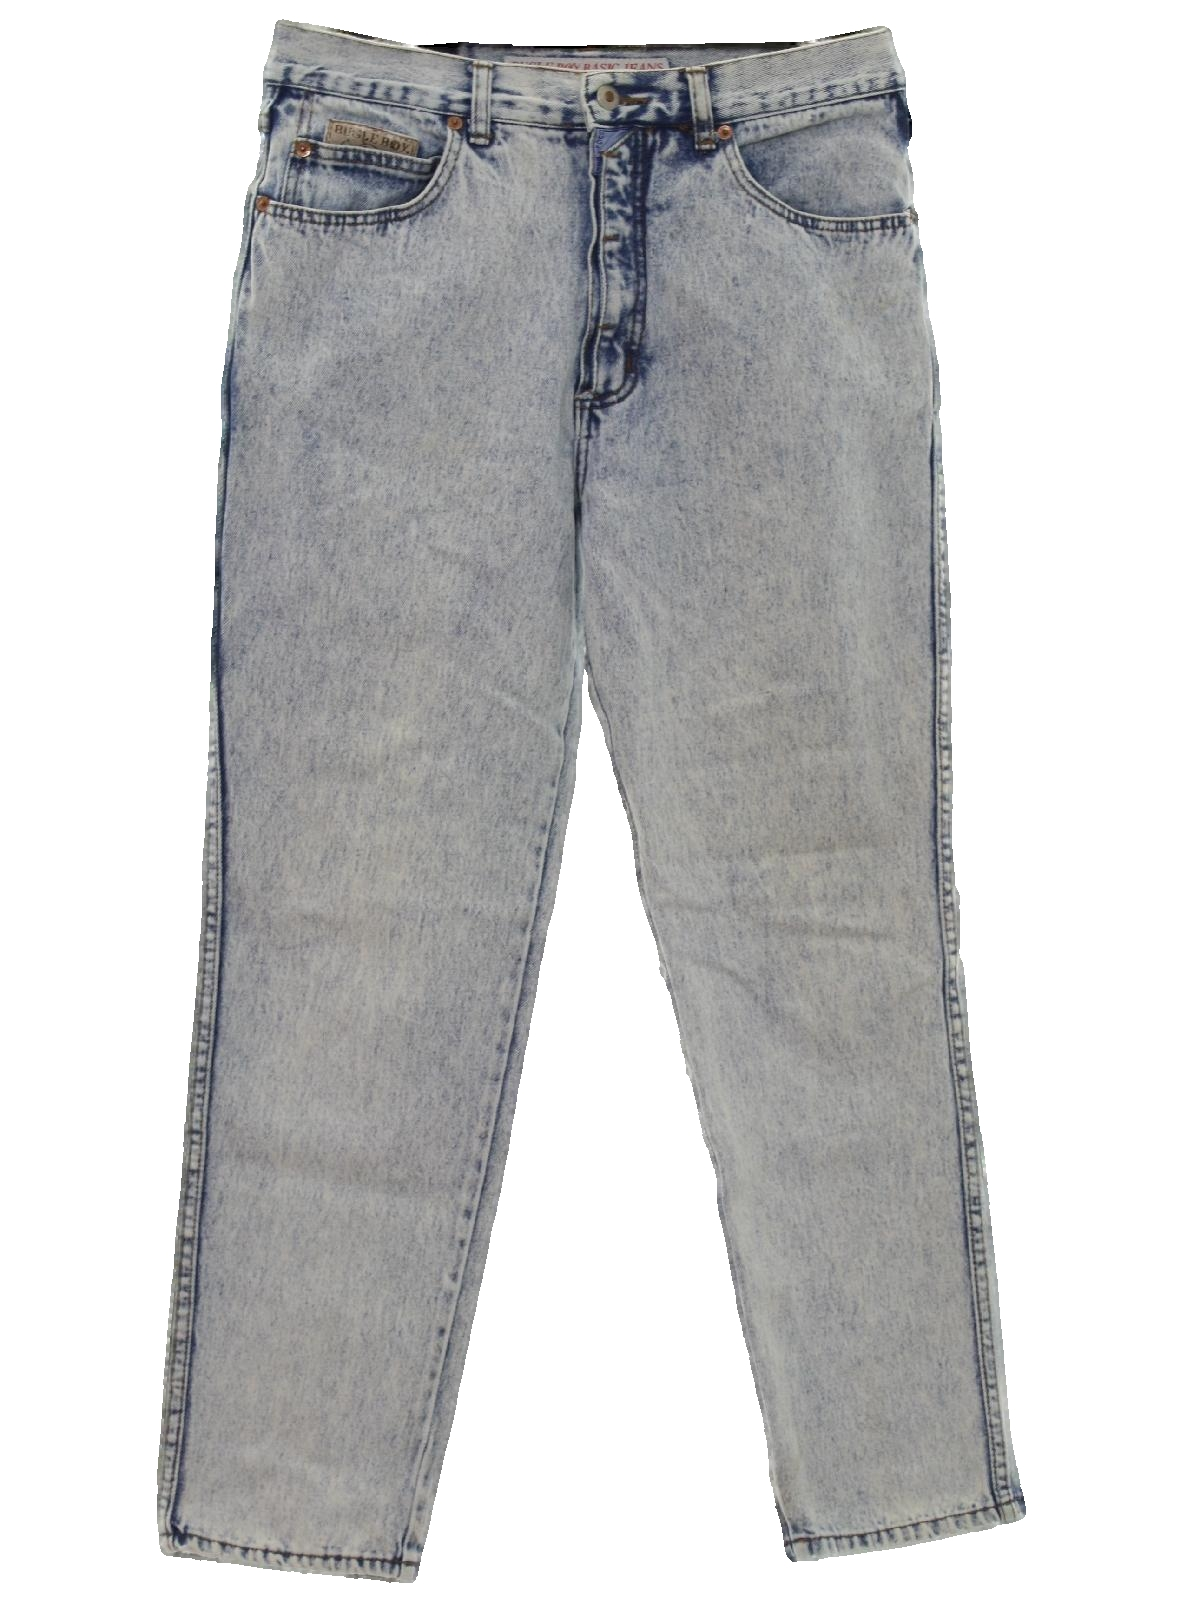 Light Wash Jeans Womens